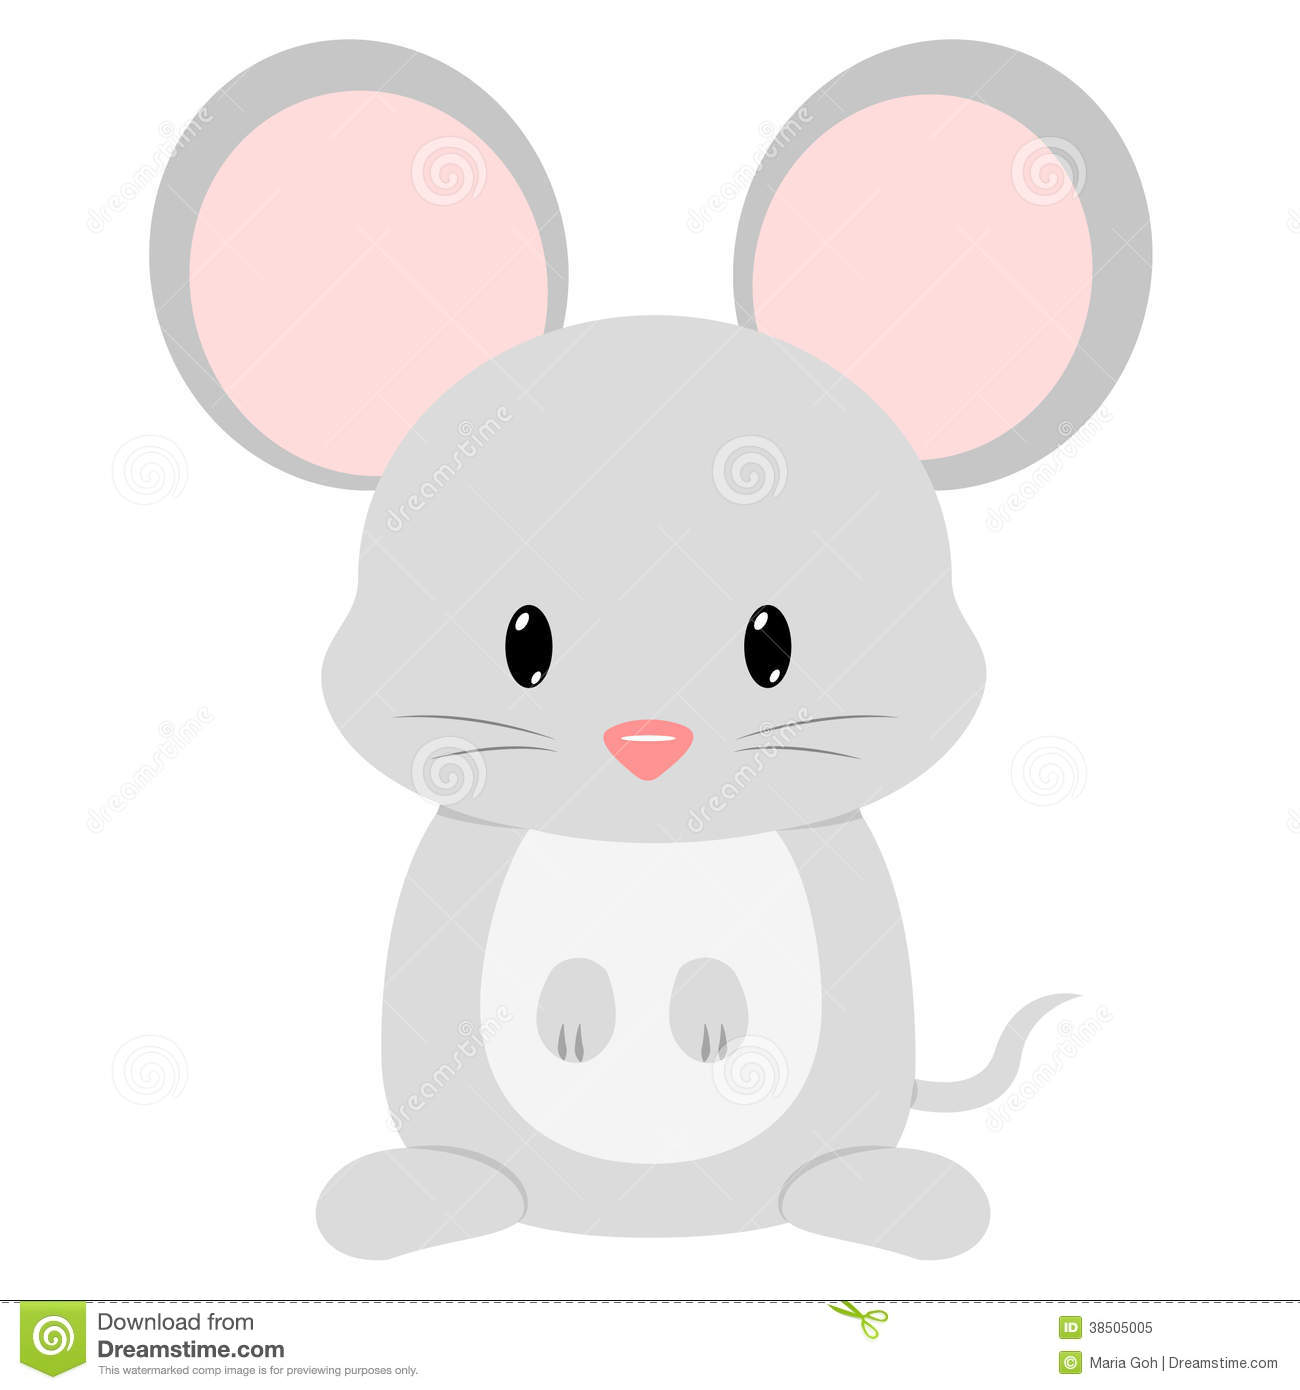 Mouse stock illustration. Illustration of hunt, mouse ...